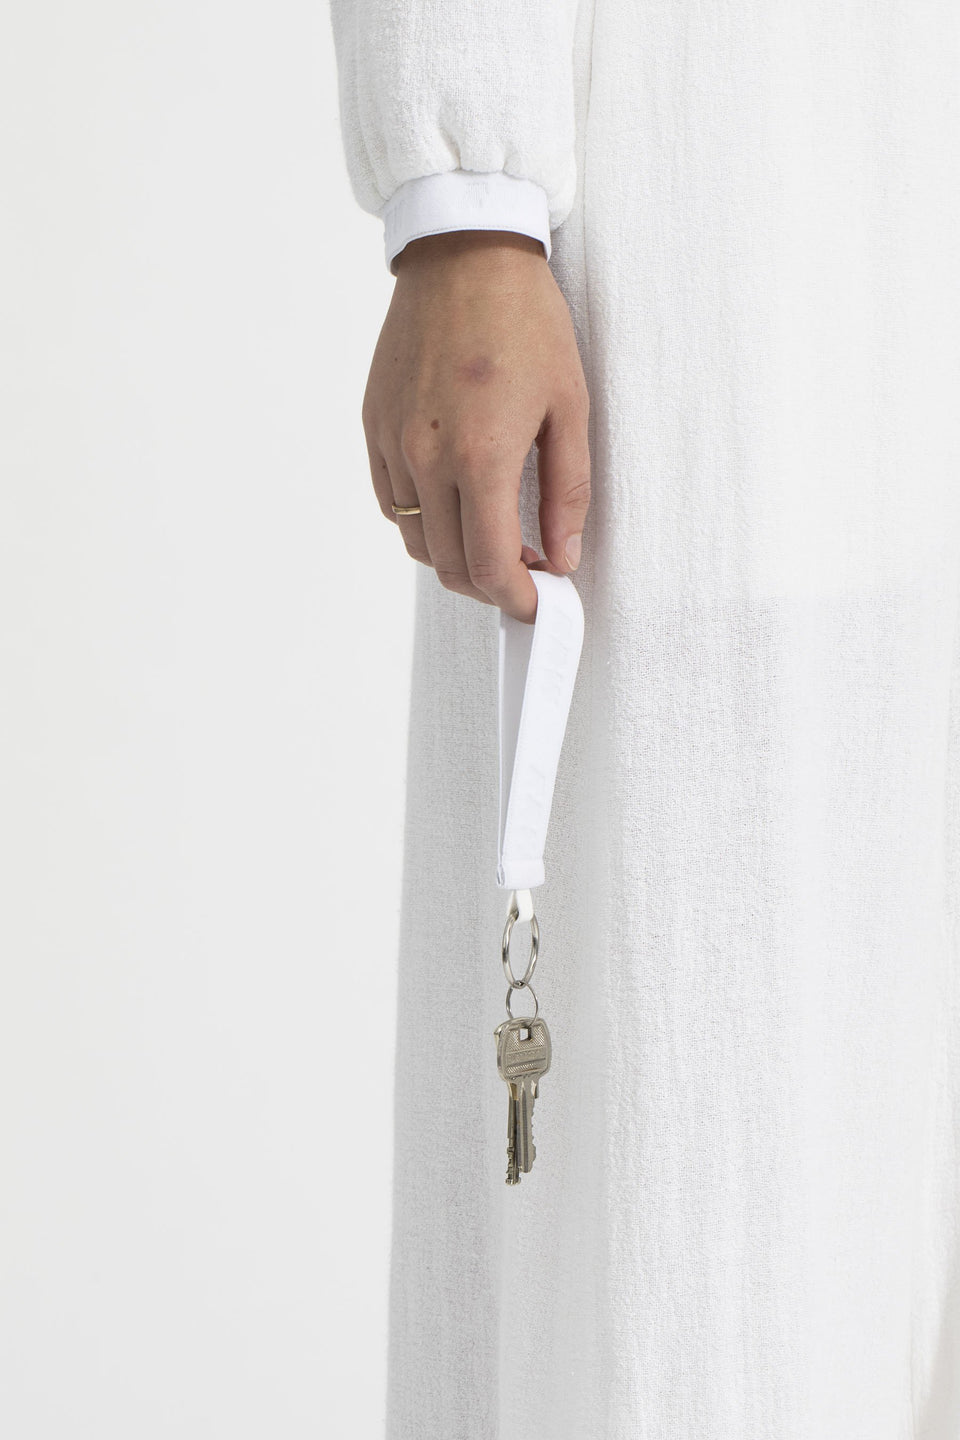 RAW U-Key Ring White